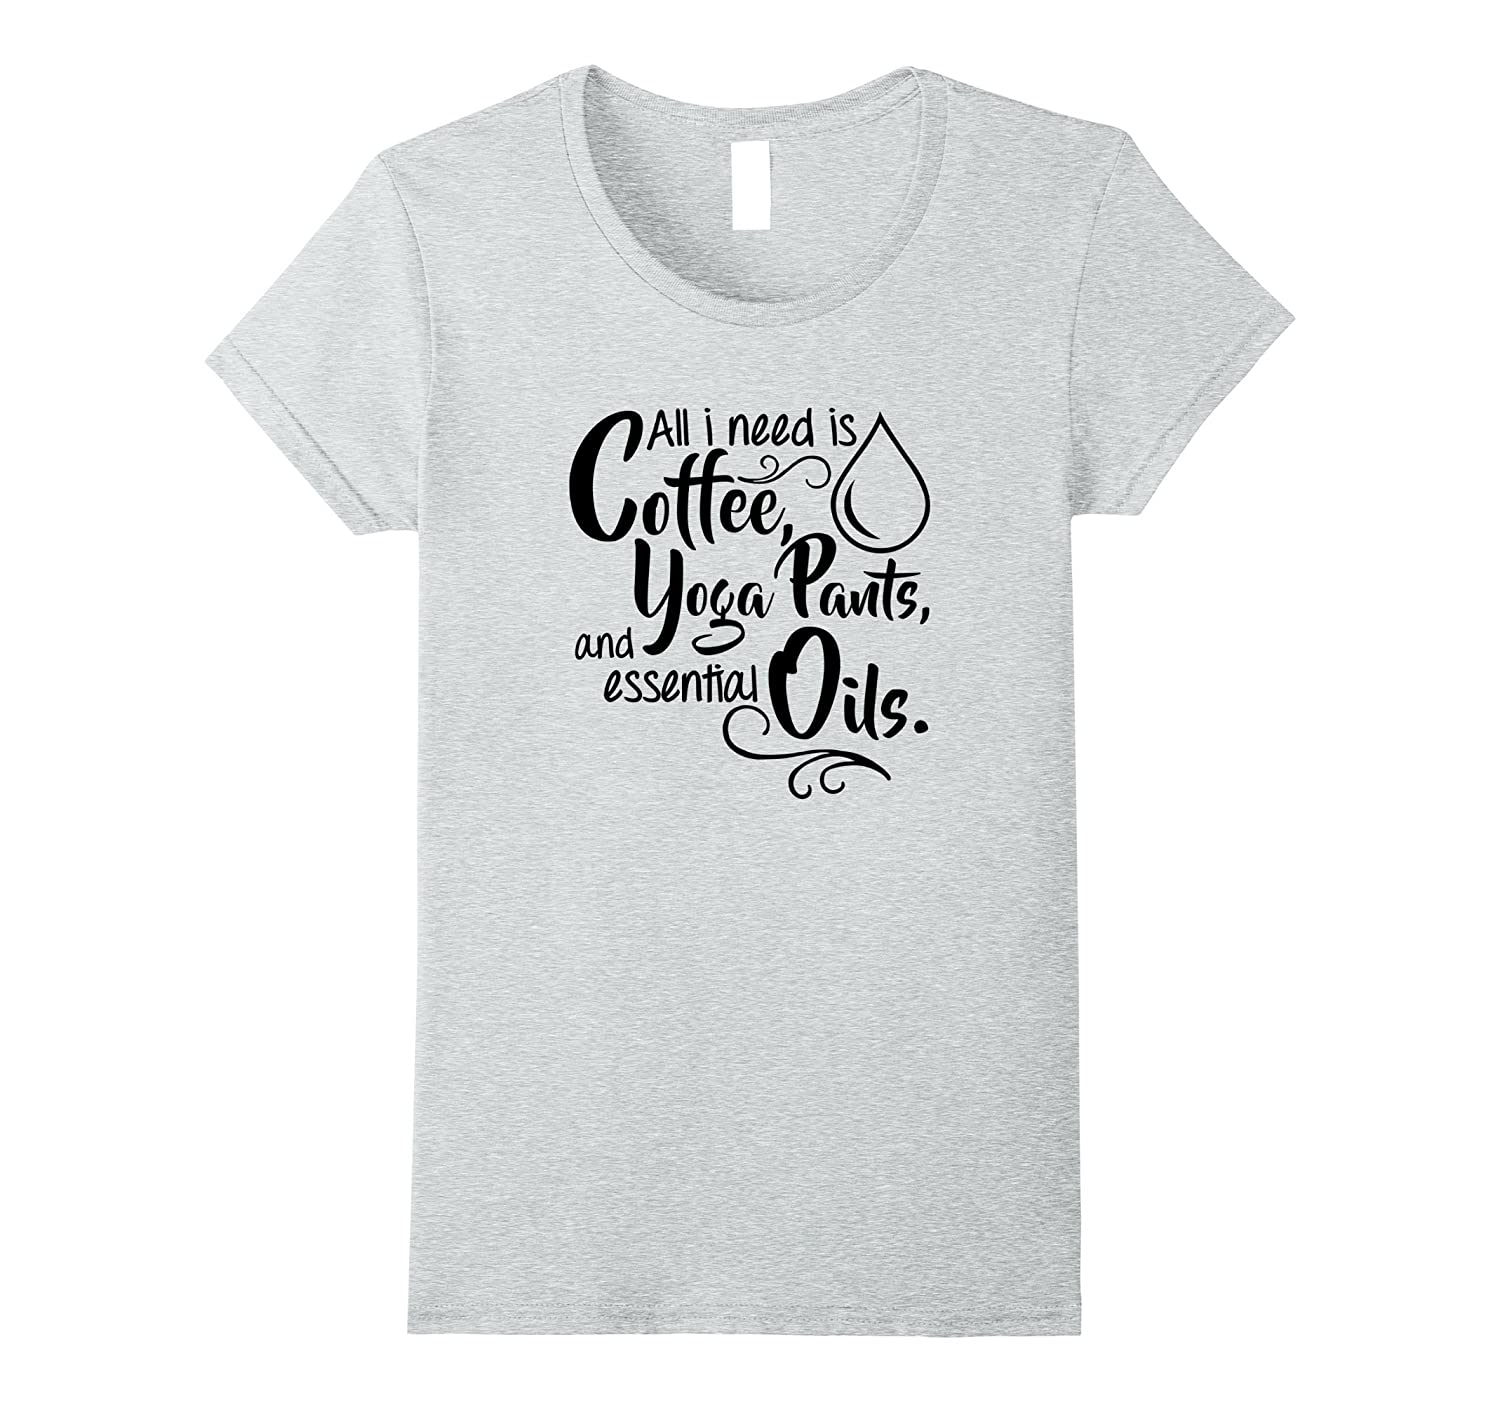 All I need is Coffee, Yoga Pants, and Essential Oils Shirt